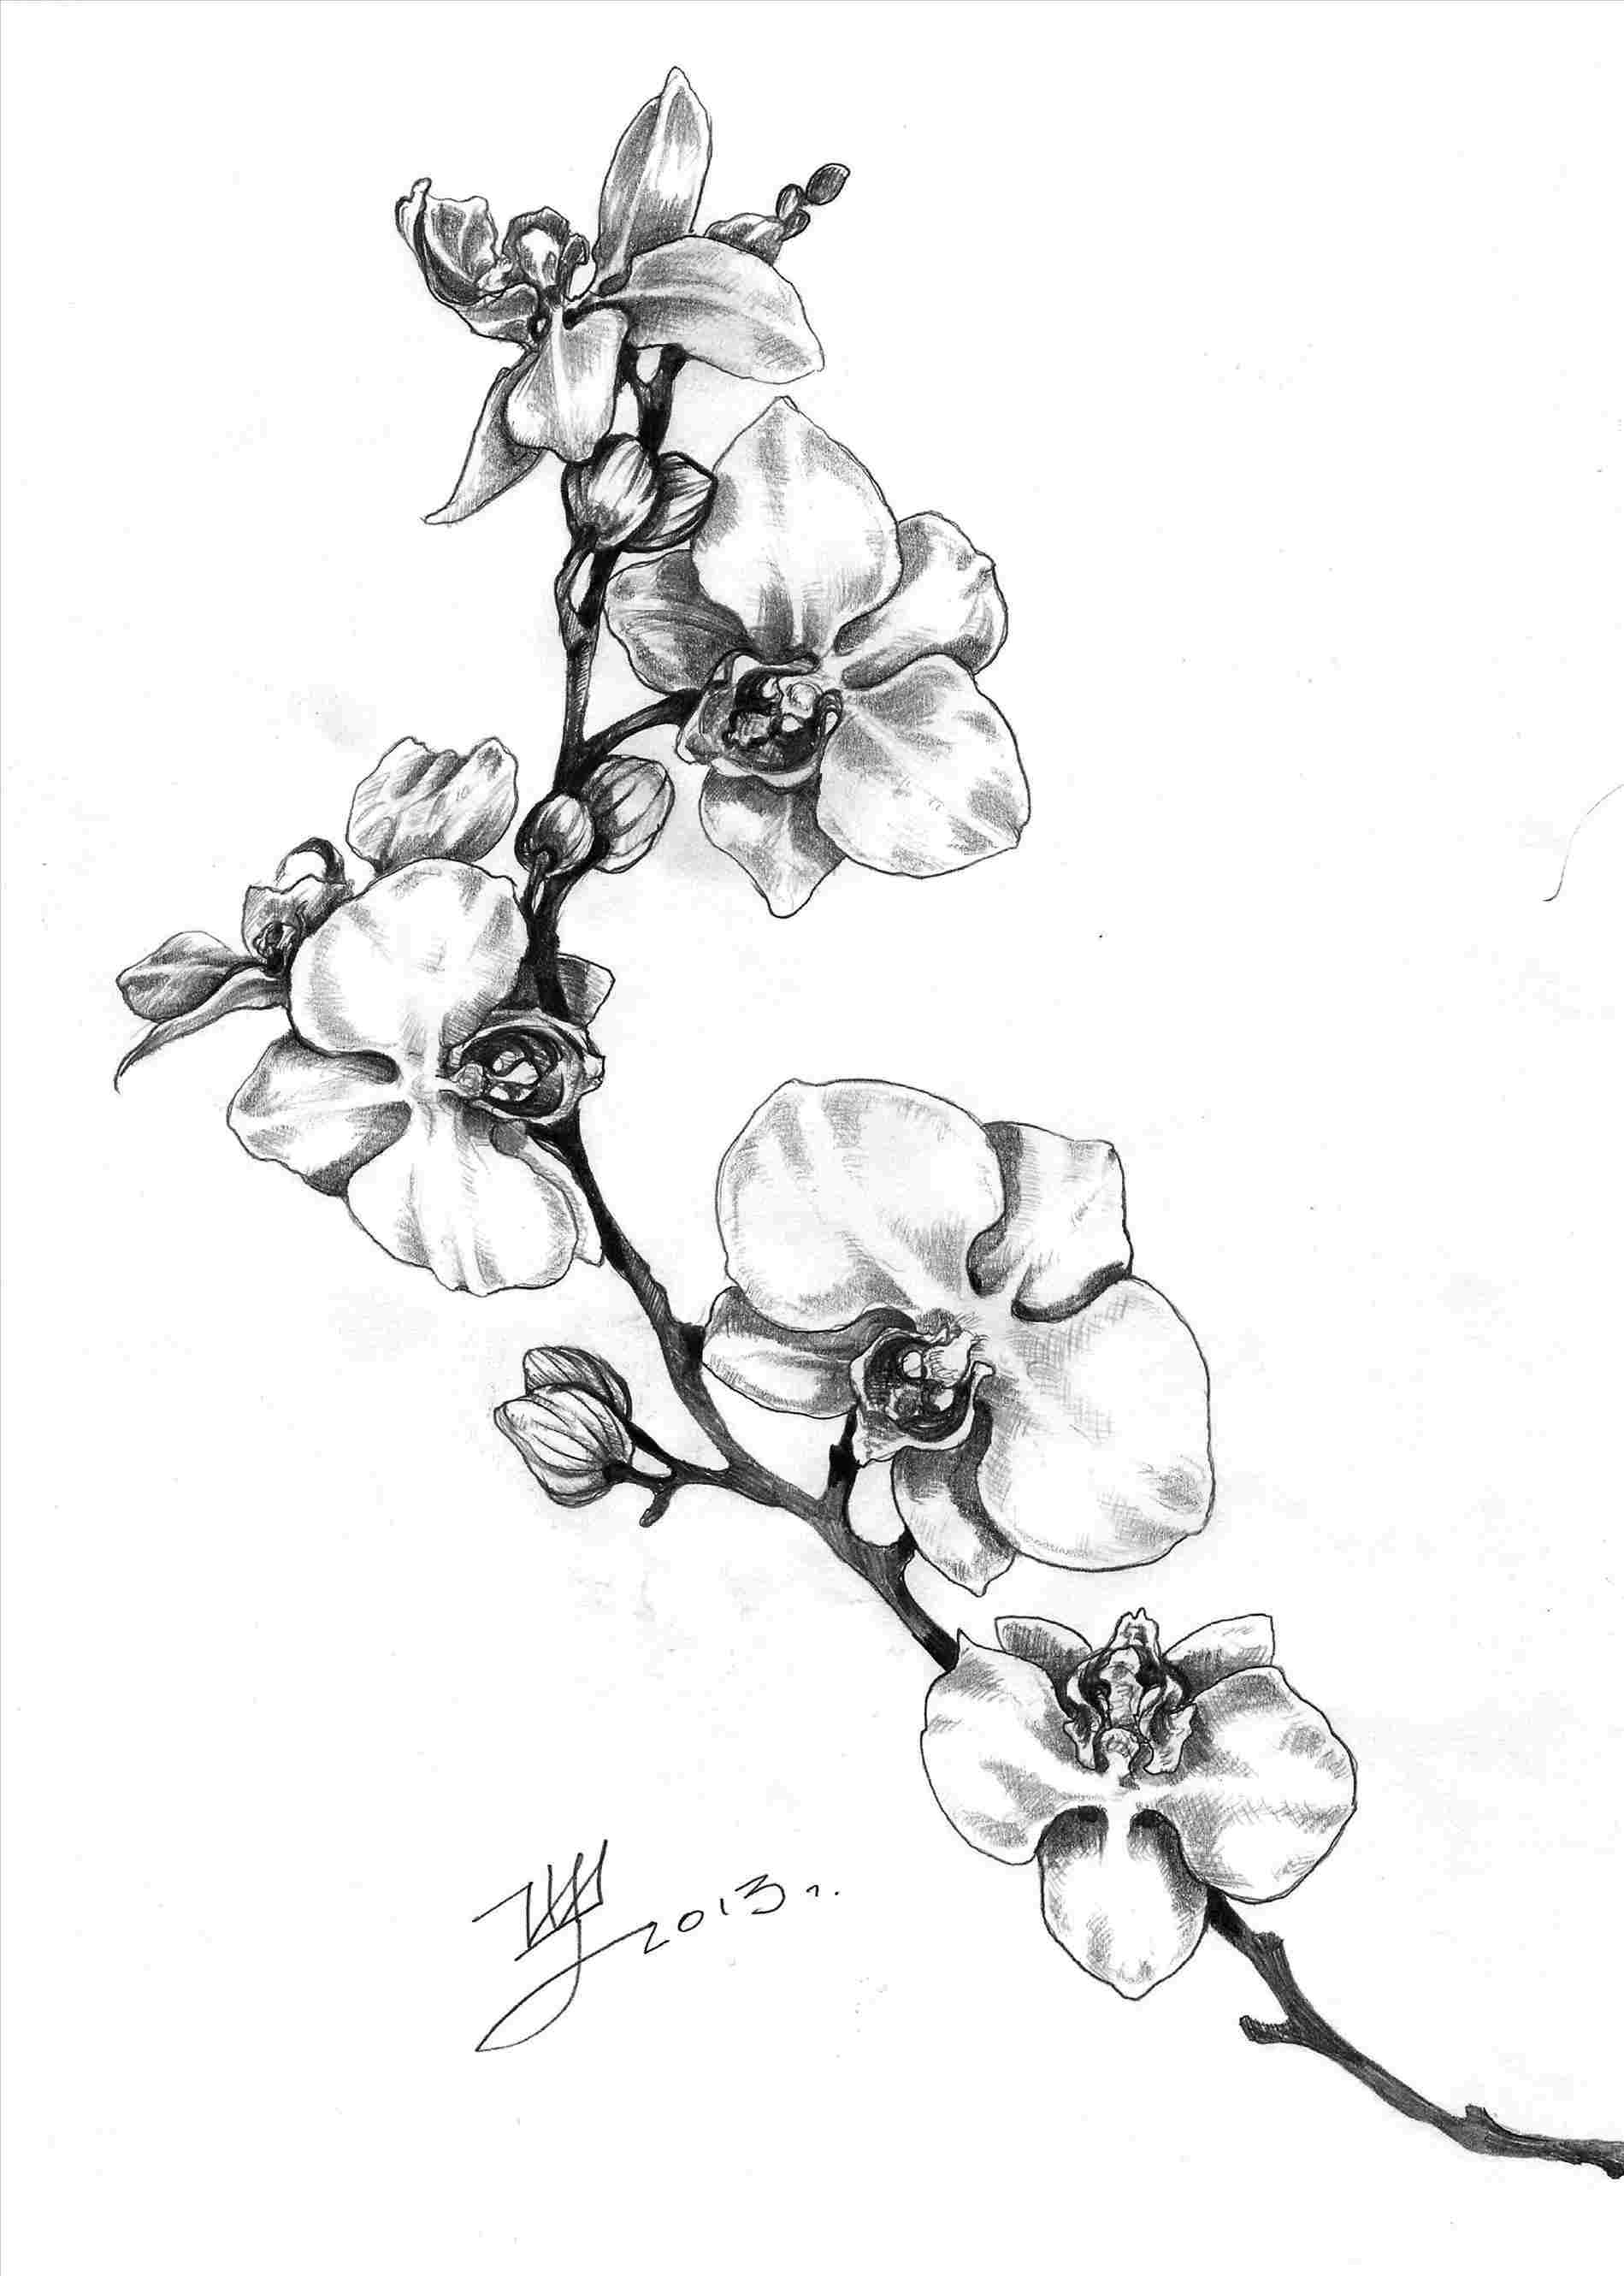 orchids drawings orchid flower tattoos garden design in 2020 orchid orchids drawings